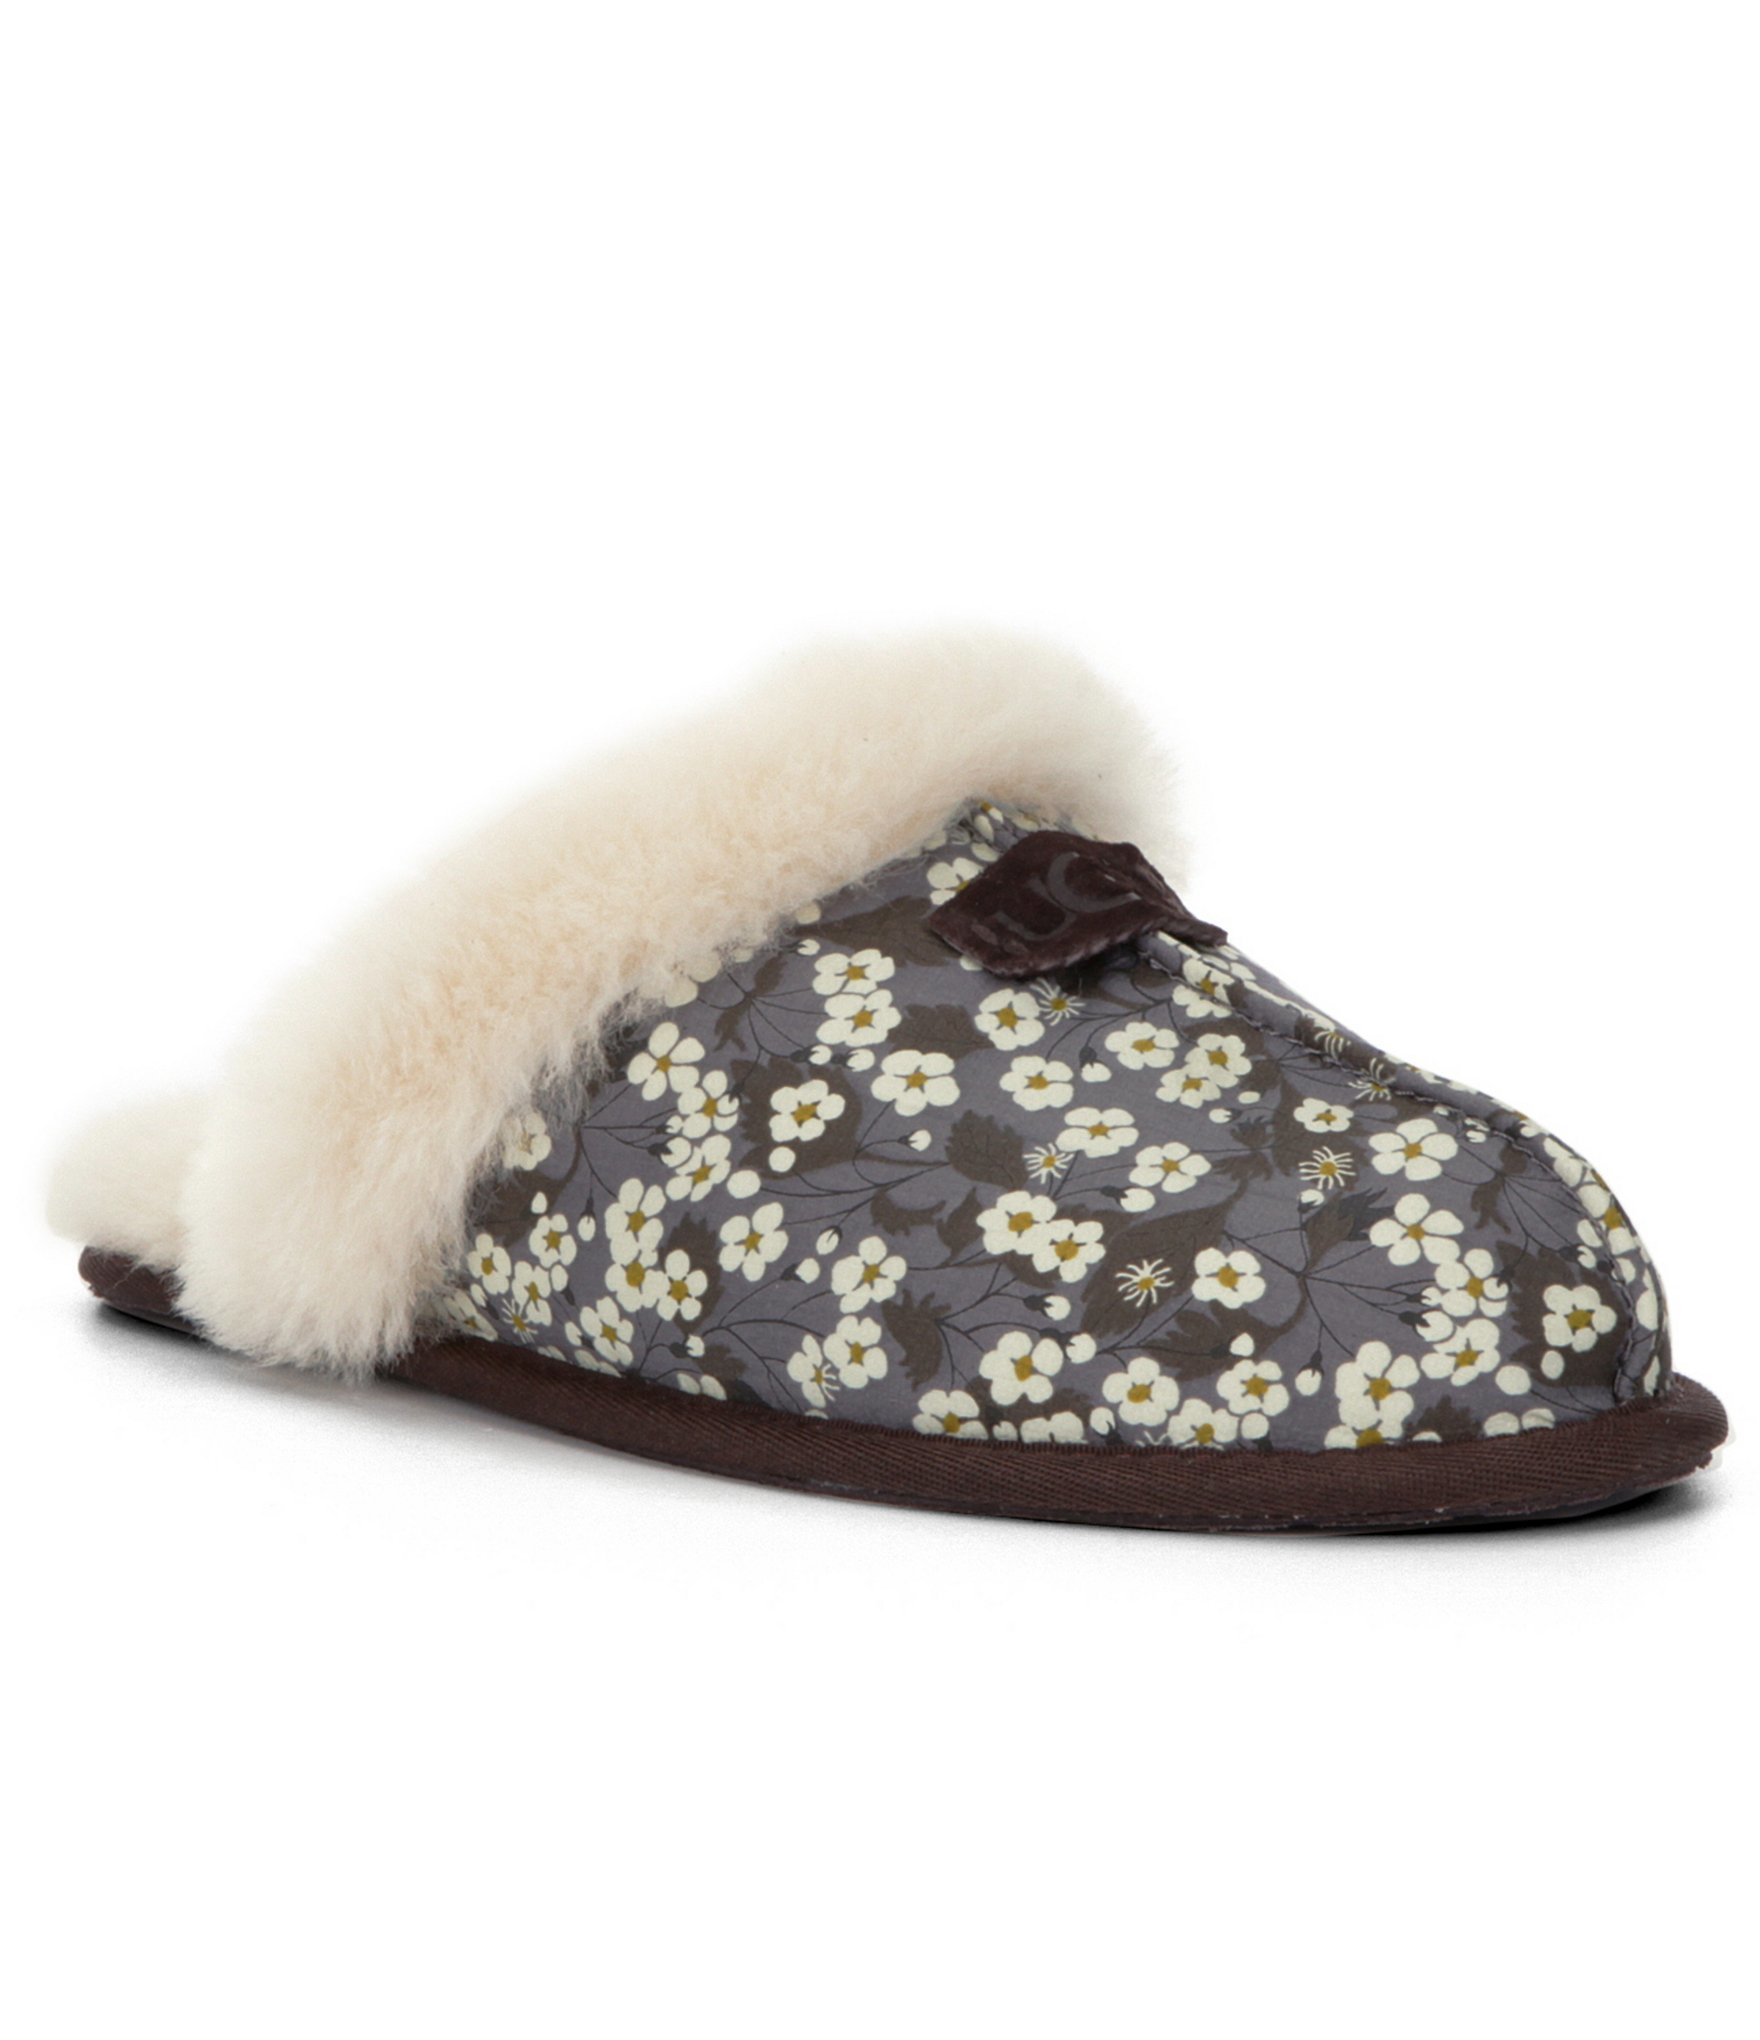 4ebfcaa0a74 Ugg Blue ® Scuffette Liberty Slippers